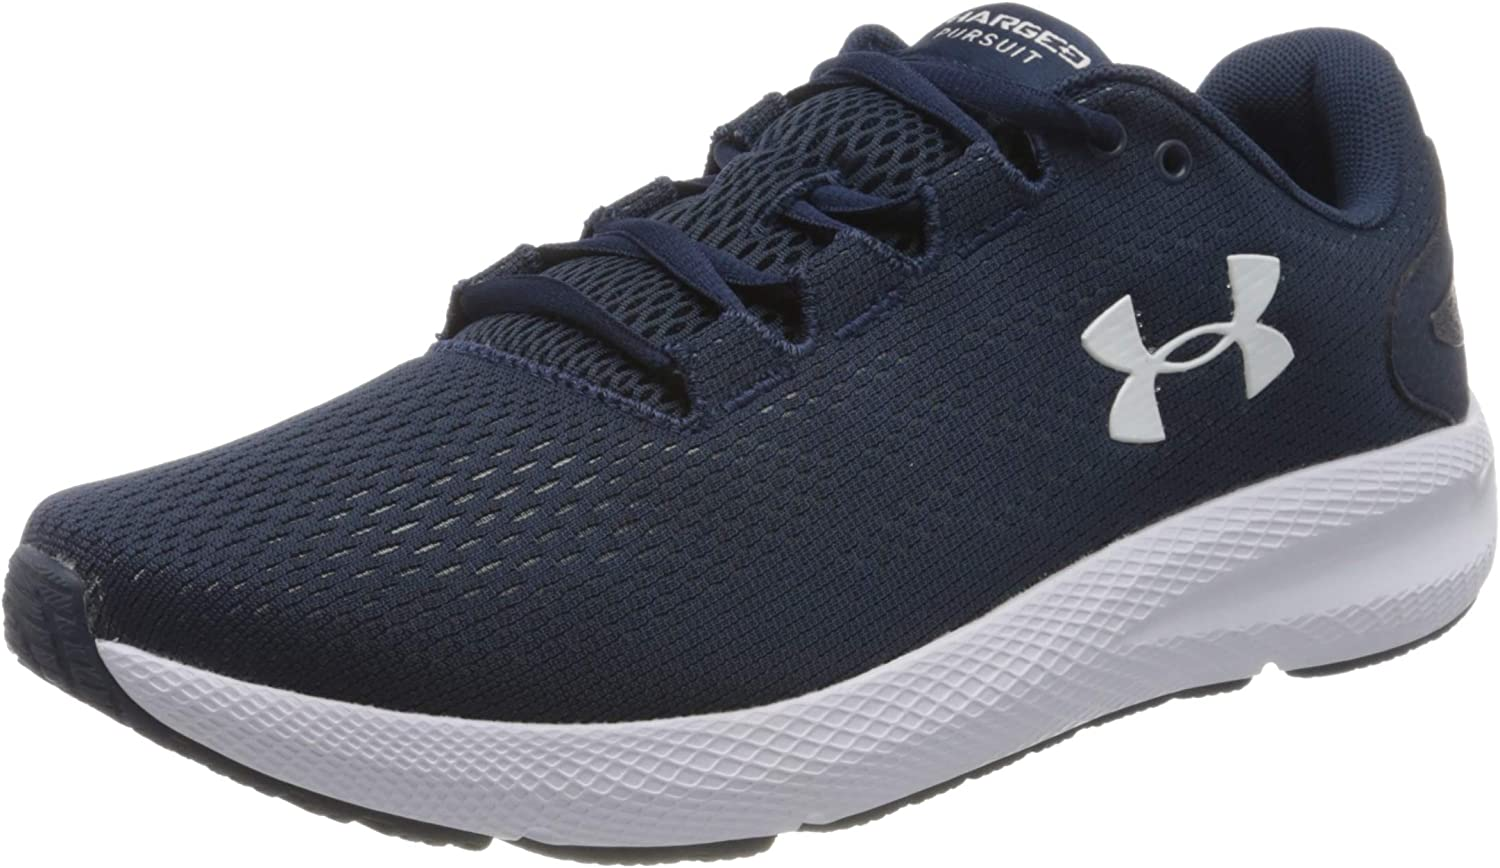 Under Armour Men's Charged Pursuit 2 Running Shoe, Academy Blue (401)/White, 9.5 M US